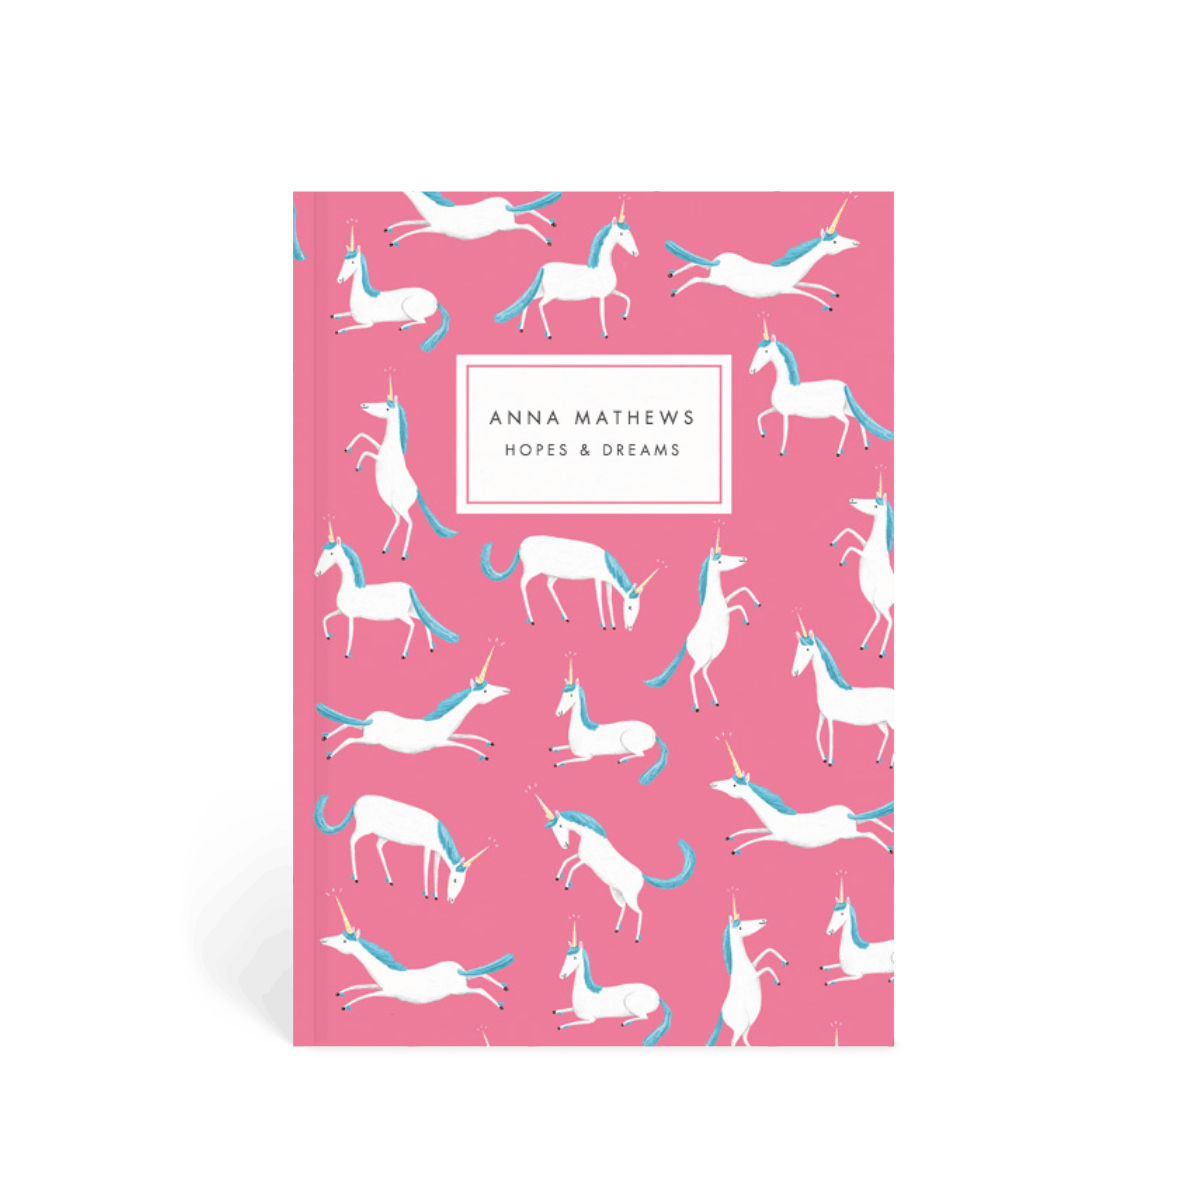 Https%3a%2f%2fwww.papier.com%2fproduct image%2f42061%2f25%2fpink unicorn 10729 front 1532365393.png?ixlib=rb 1.1